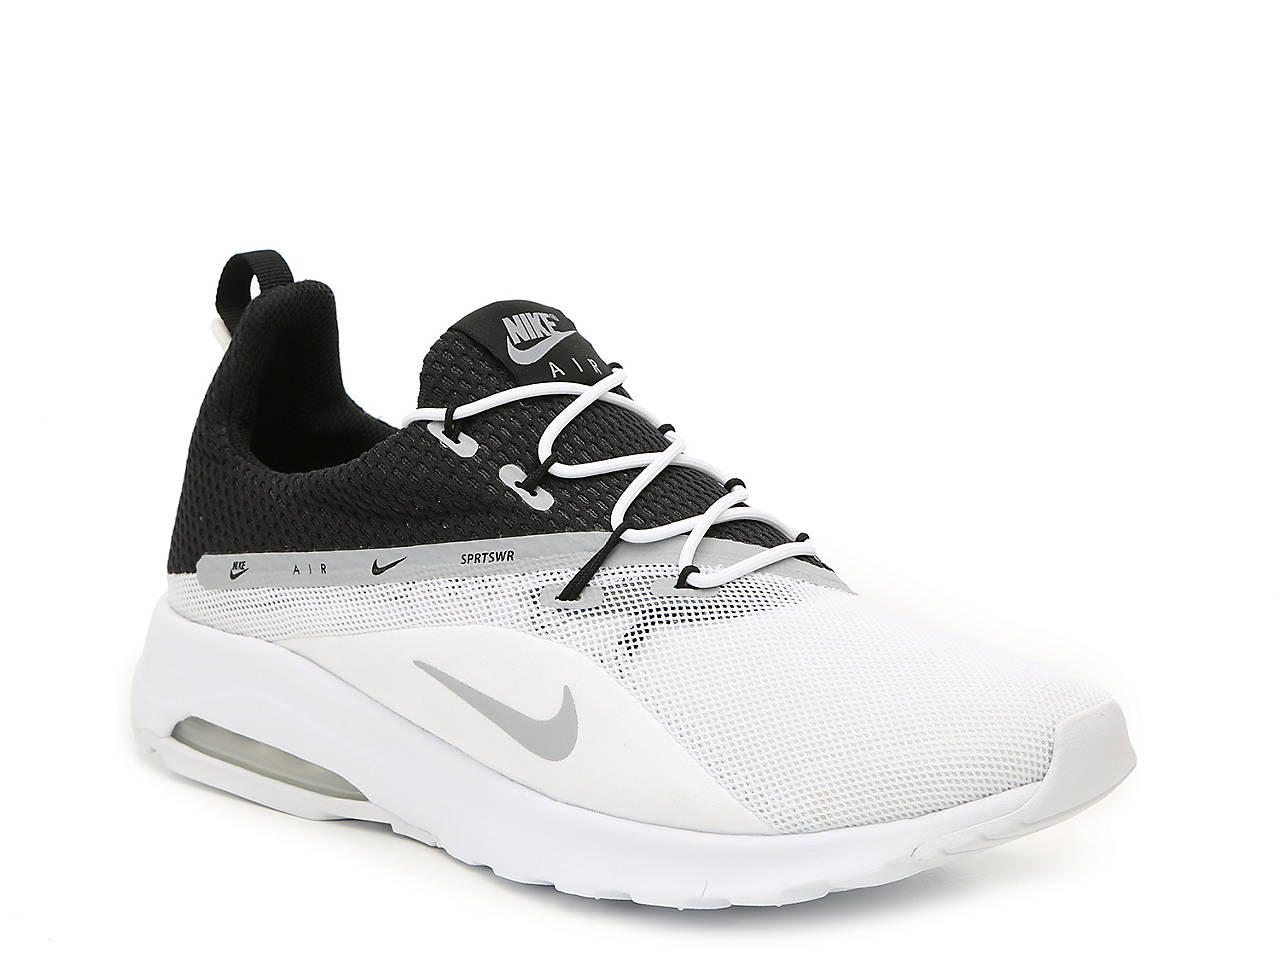 96f435a707 Nike Air Max Motion Racer 2 Sneaker - Men's Men's Shoes | DSW